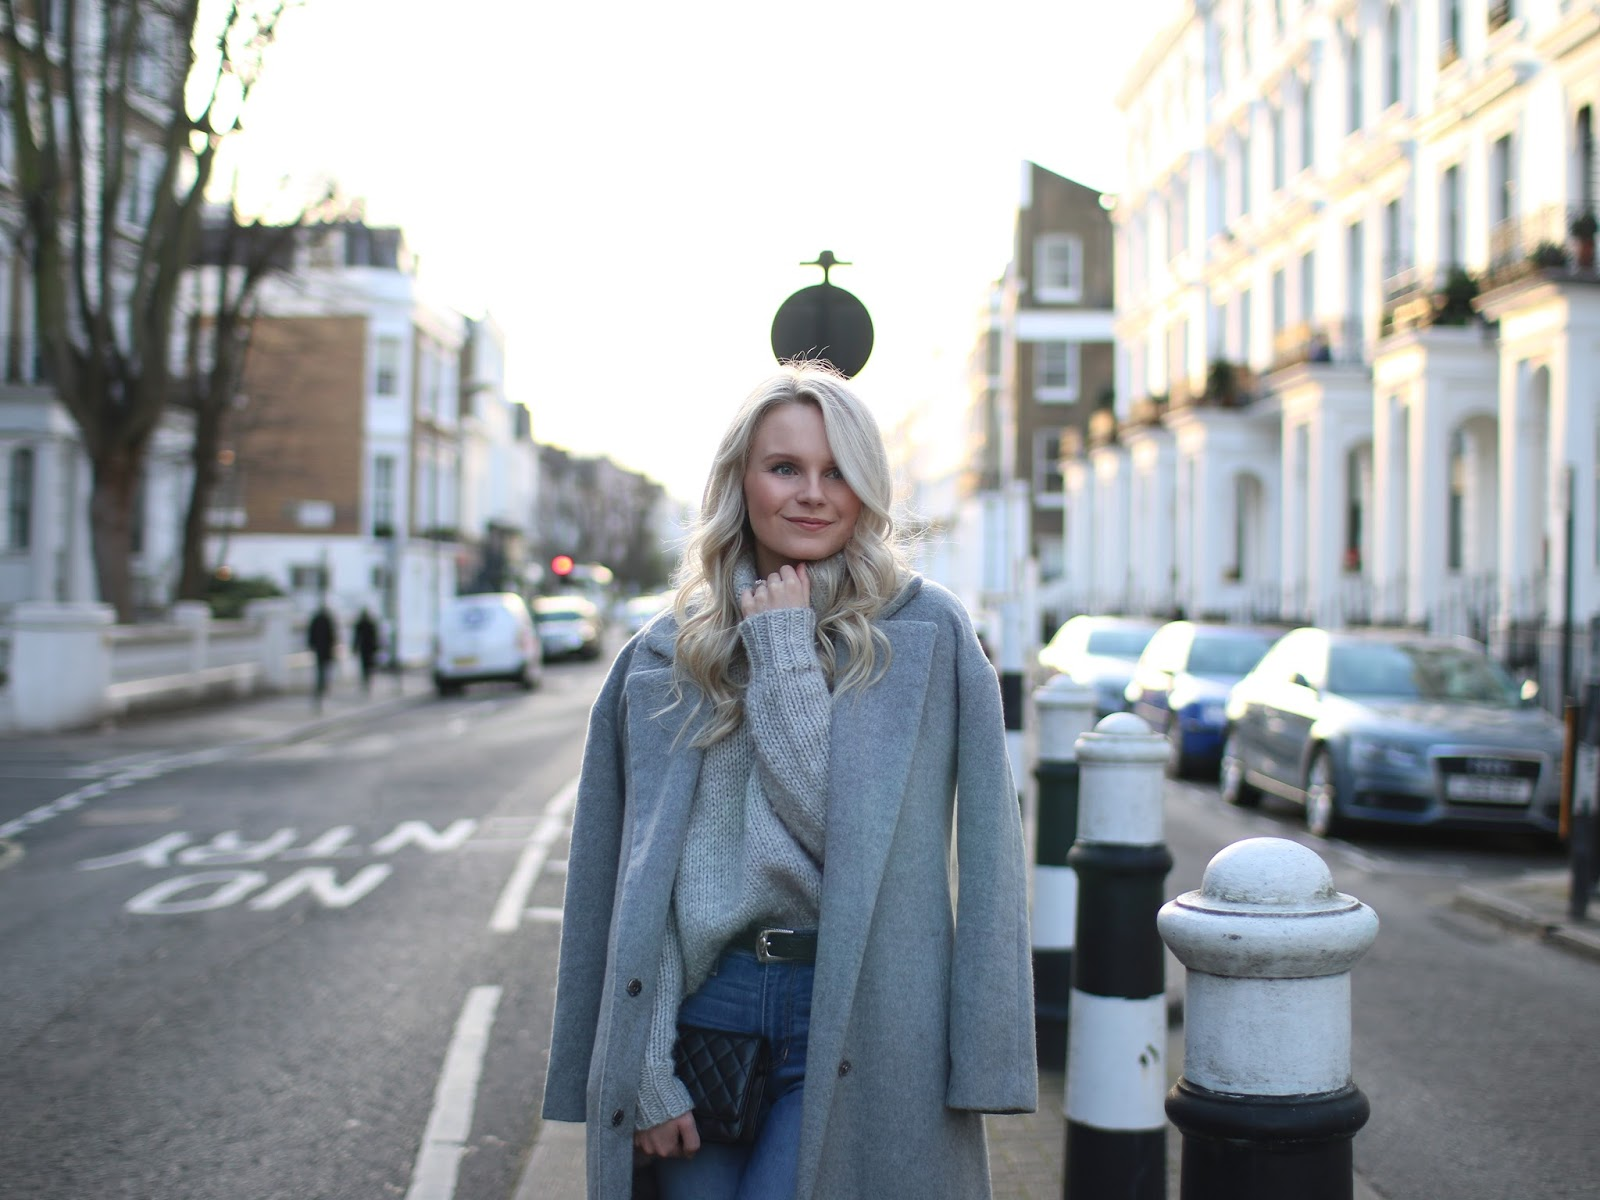 sunset photoshoot in notting hill